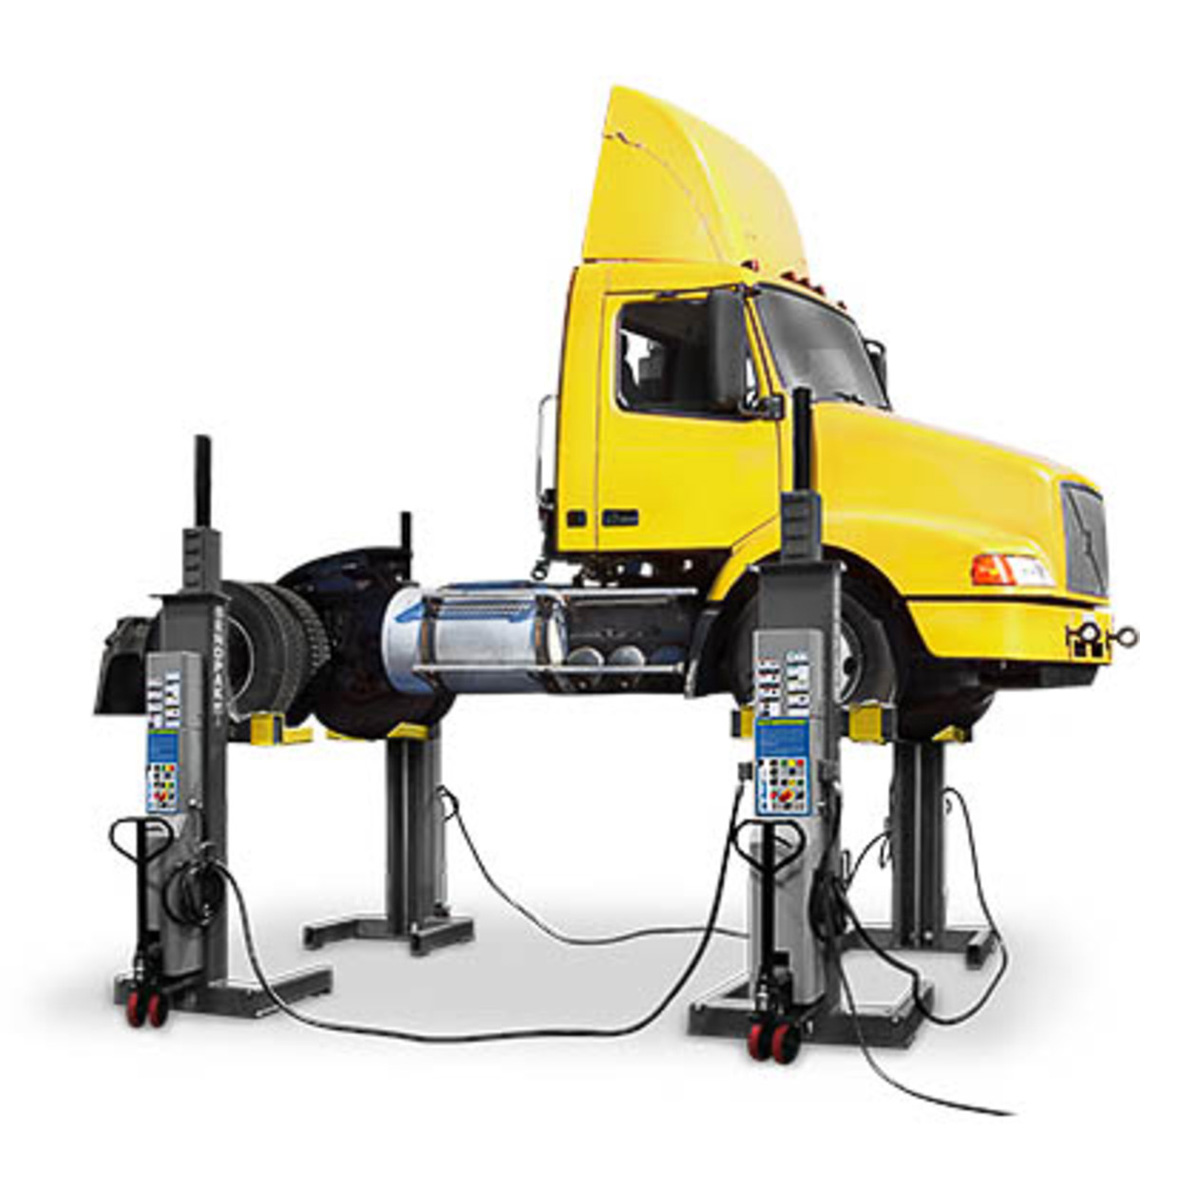 Portable Column Lifts from Babco